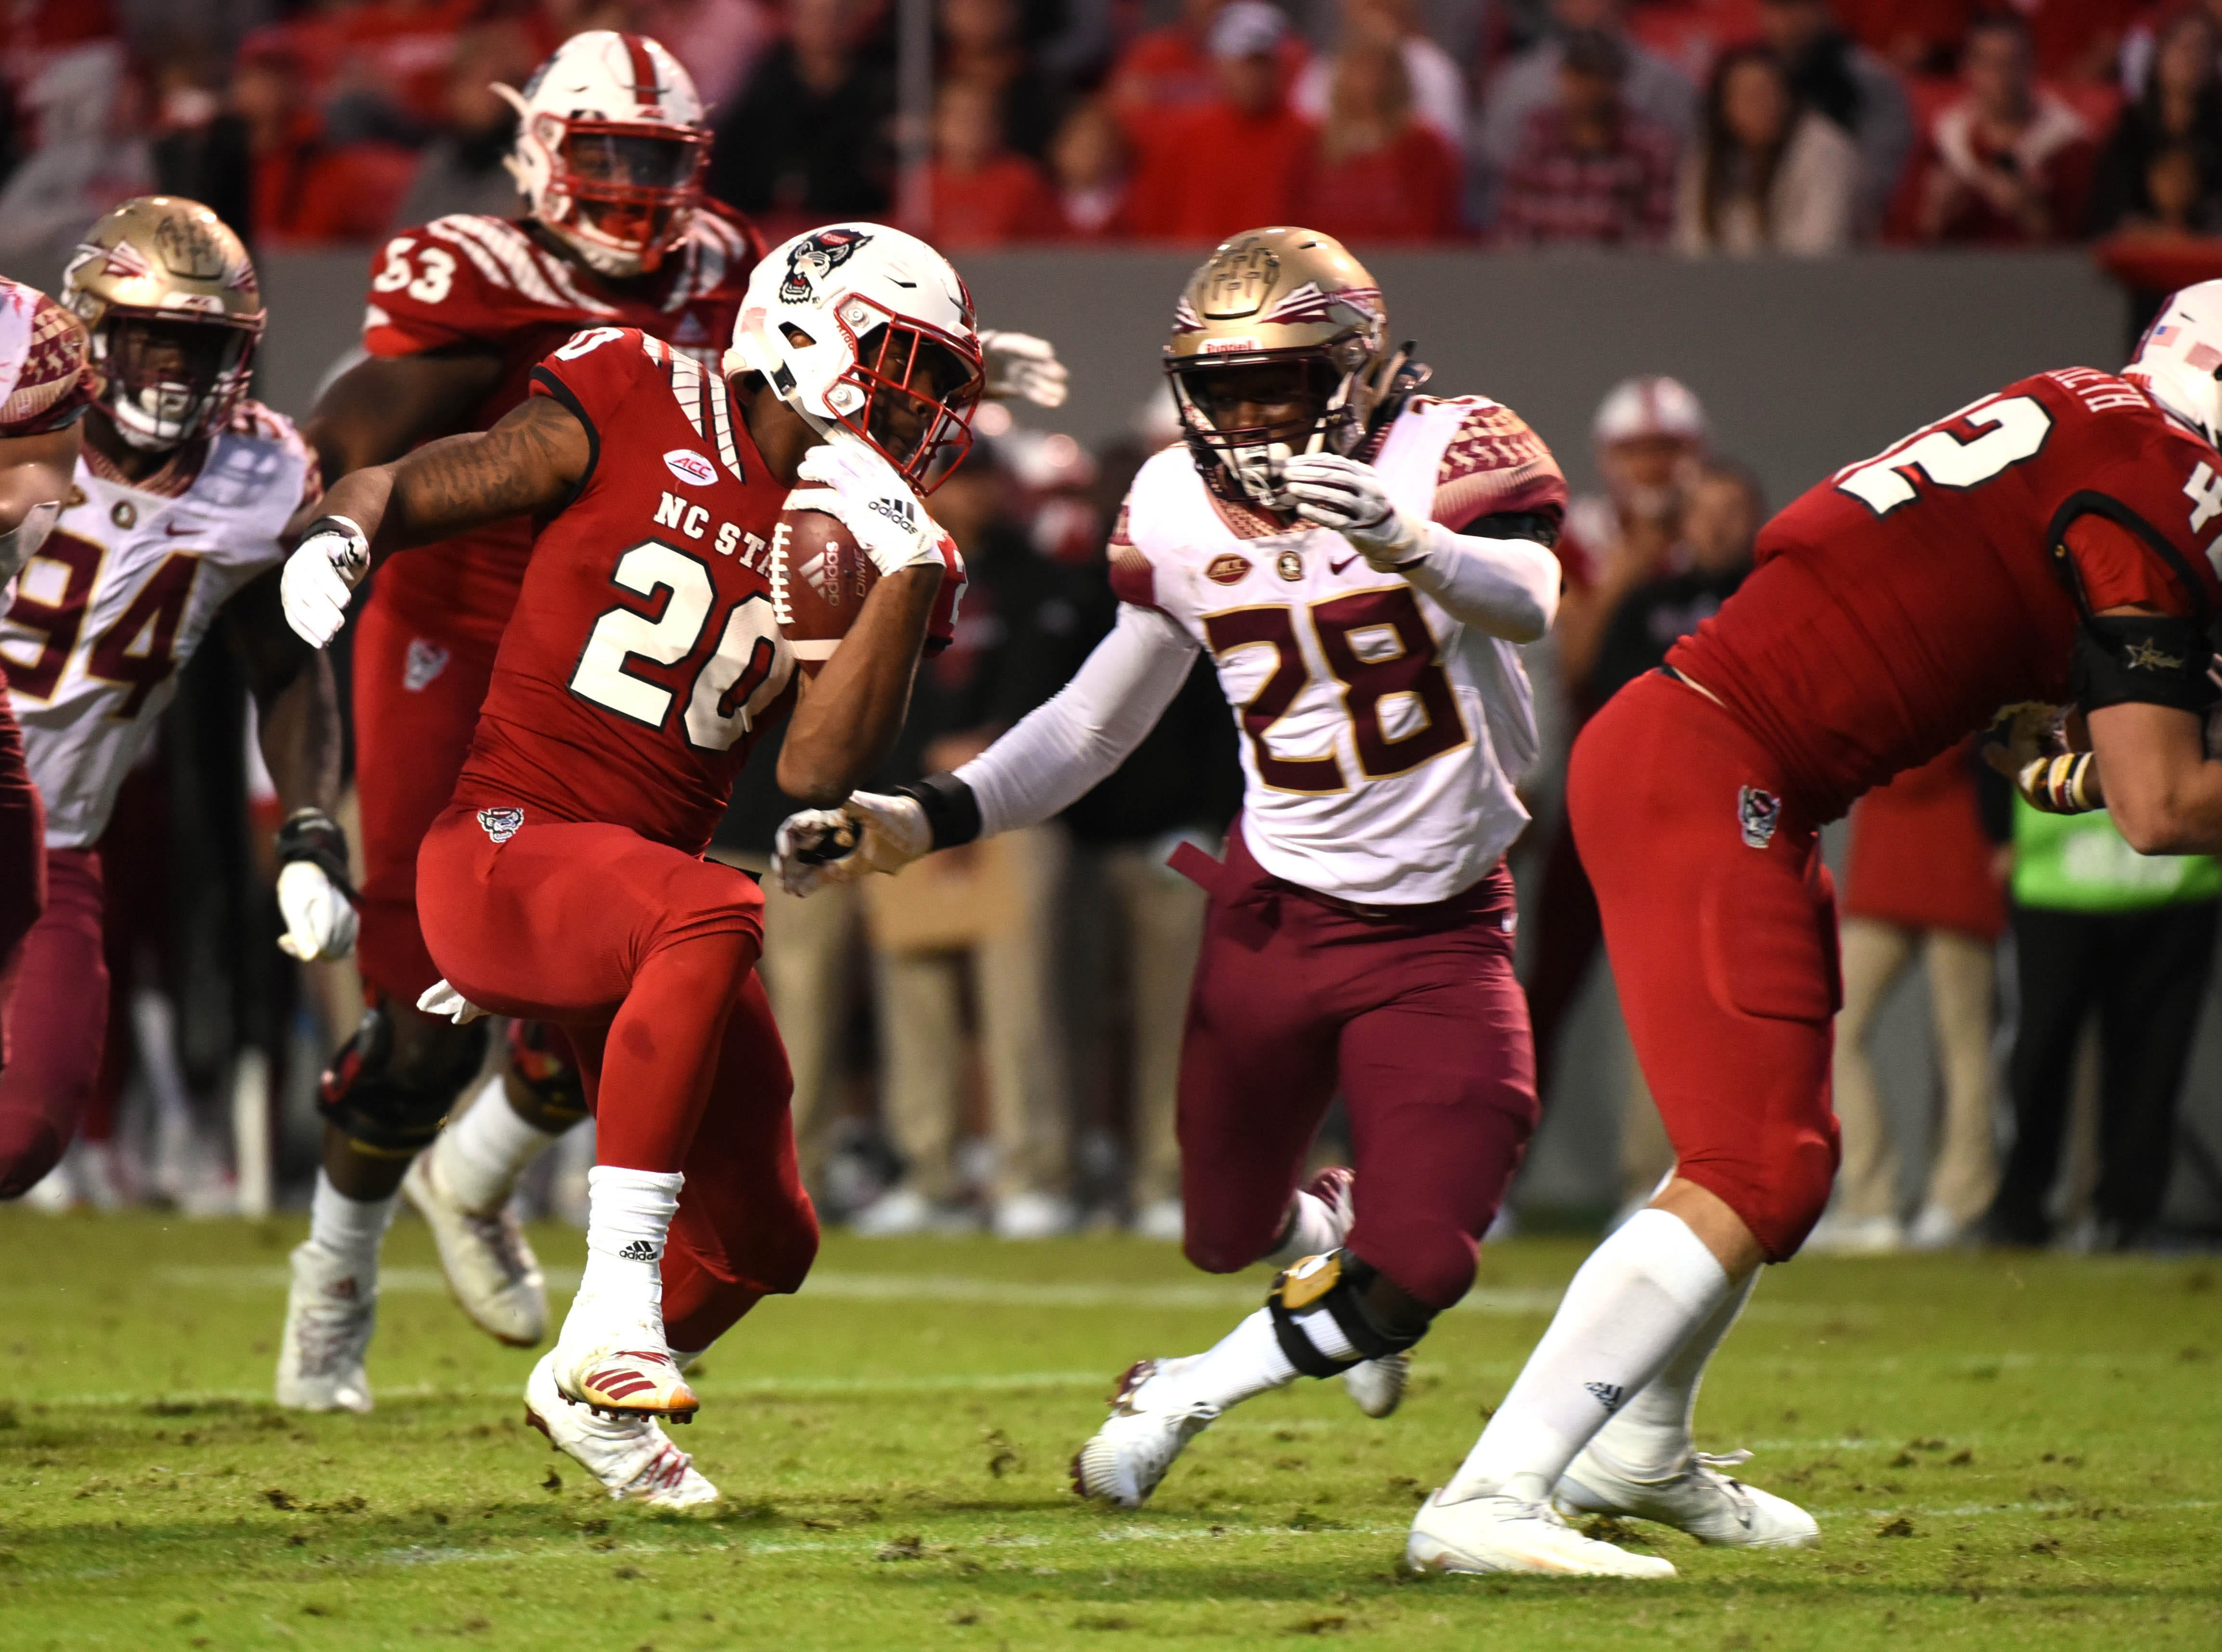 Nov 3, 2018; Raleigh, NC, USA; North Carolina State Wolfpack running back Ricky Person Jr. (20) eludes Florida State Seminoles linebacker DeCalon Brooks (28) during the second half at Carter-Finley Stadium.  The Wolfpack won 47-28.  Mandatory Credit: Rob Kinnan-USA TODAY Sports